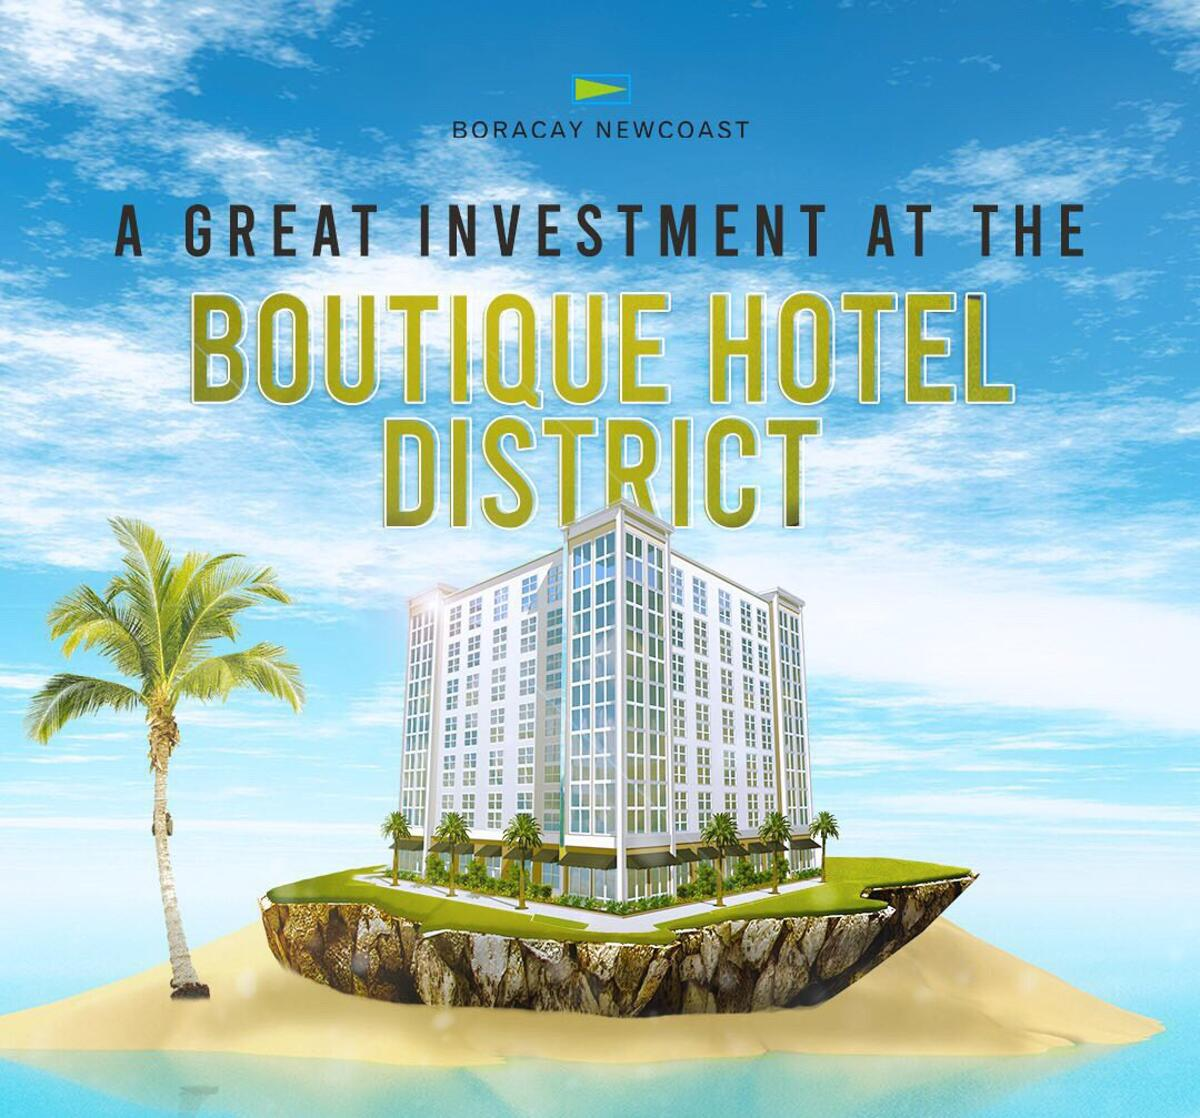 Boracay Newcoast Boutique Hotel District